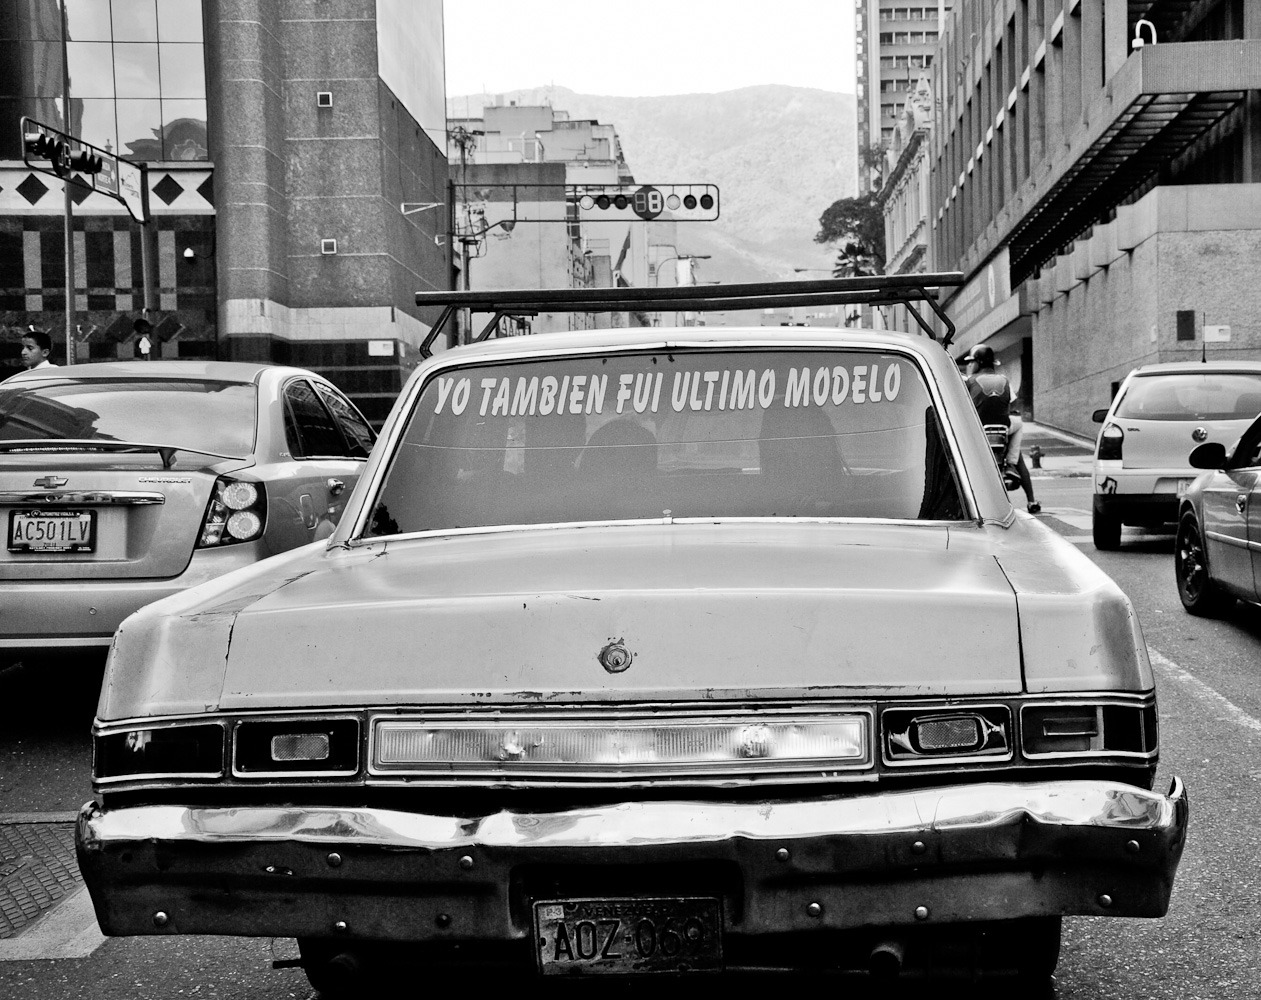 Driving in Caracas to find models of the Seventies ©Grace Fredrikson